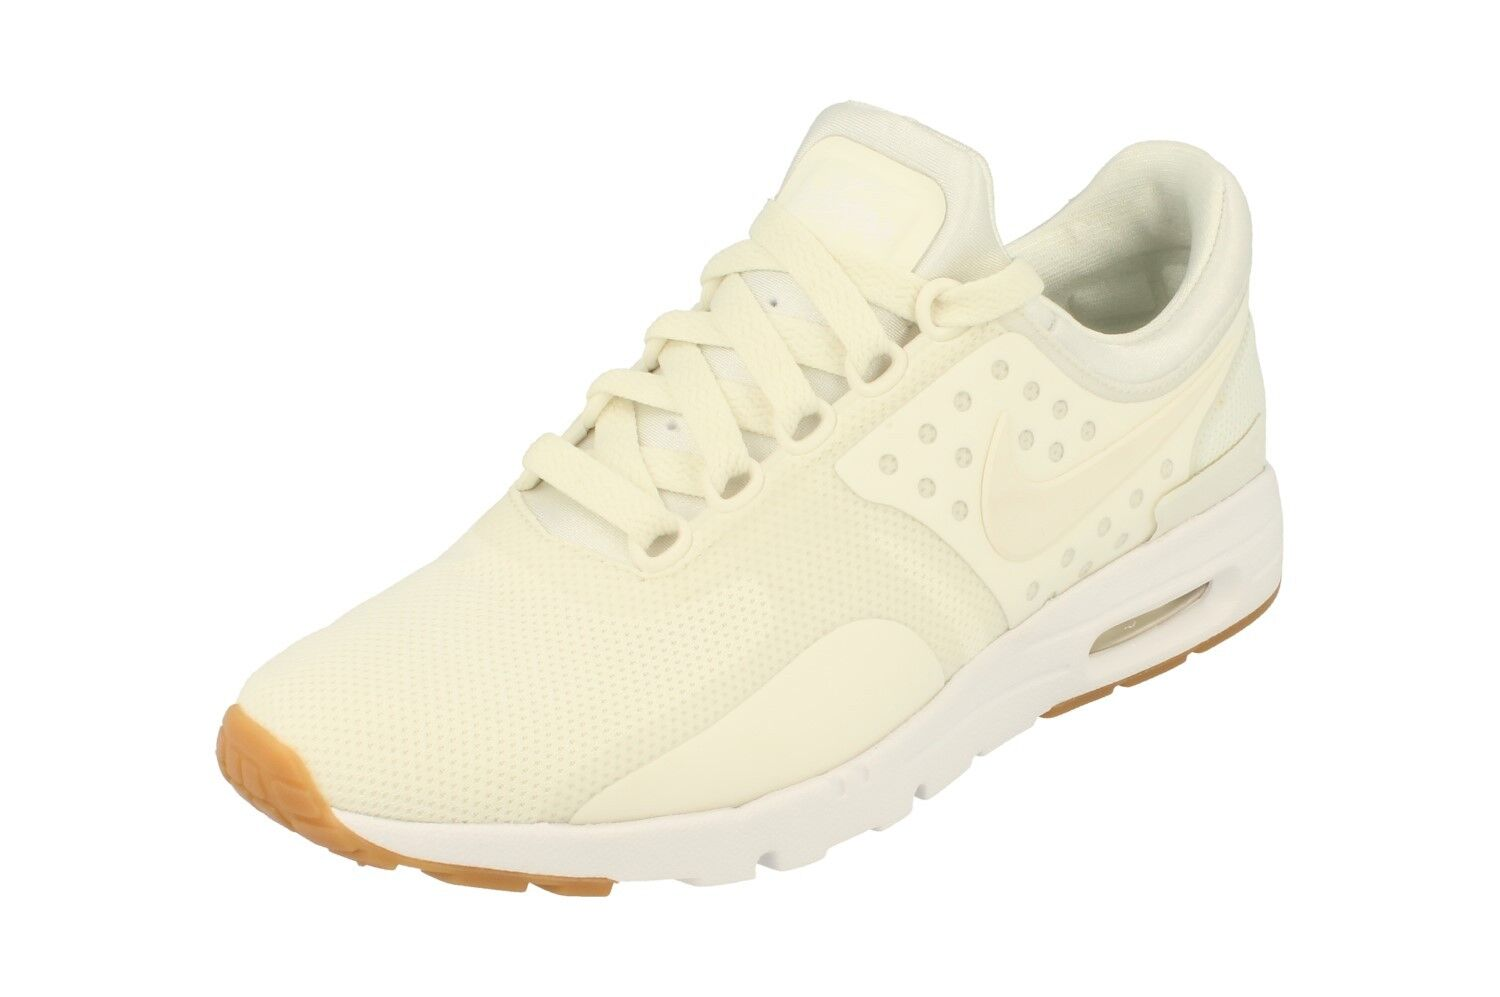 Nike Womens Air Max Zero Running Trainers 857661 Sneakers shoes 105